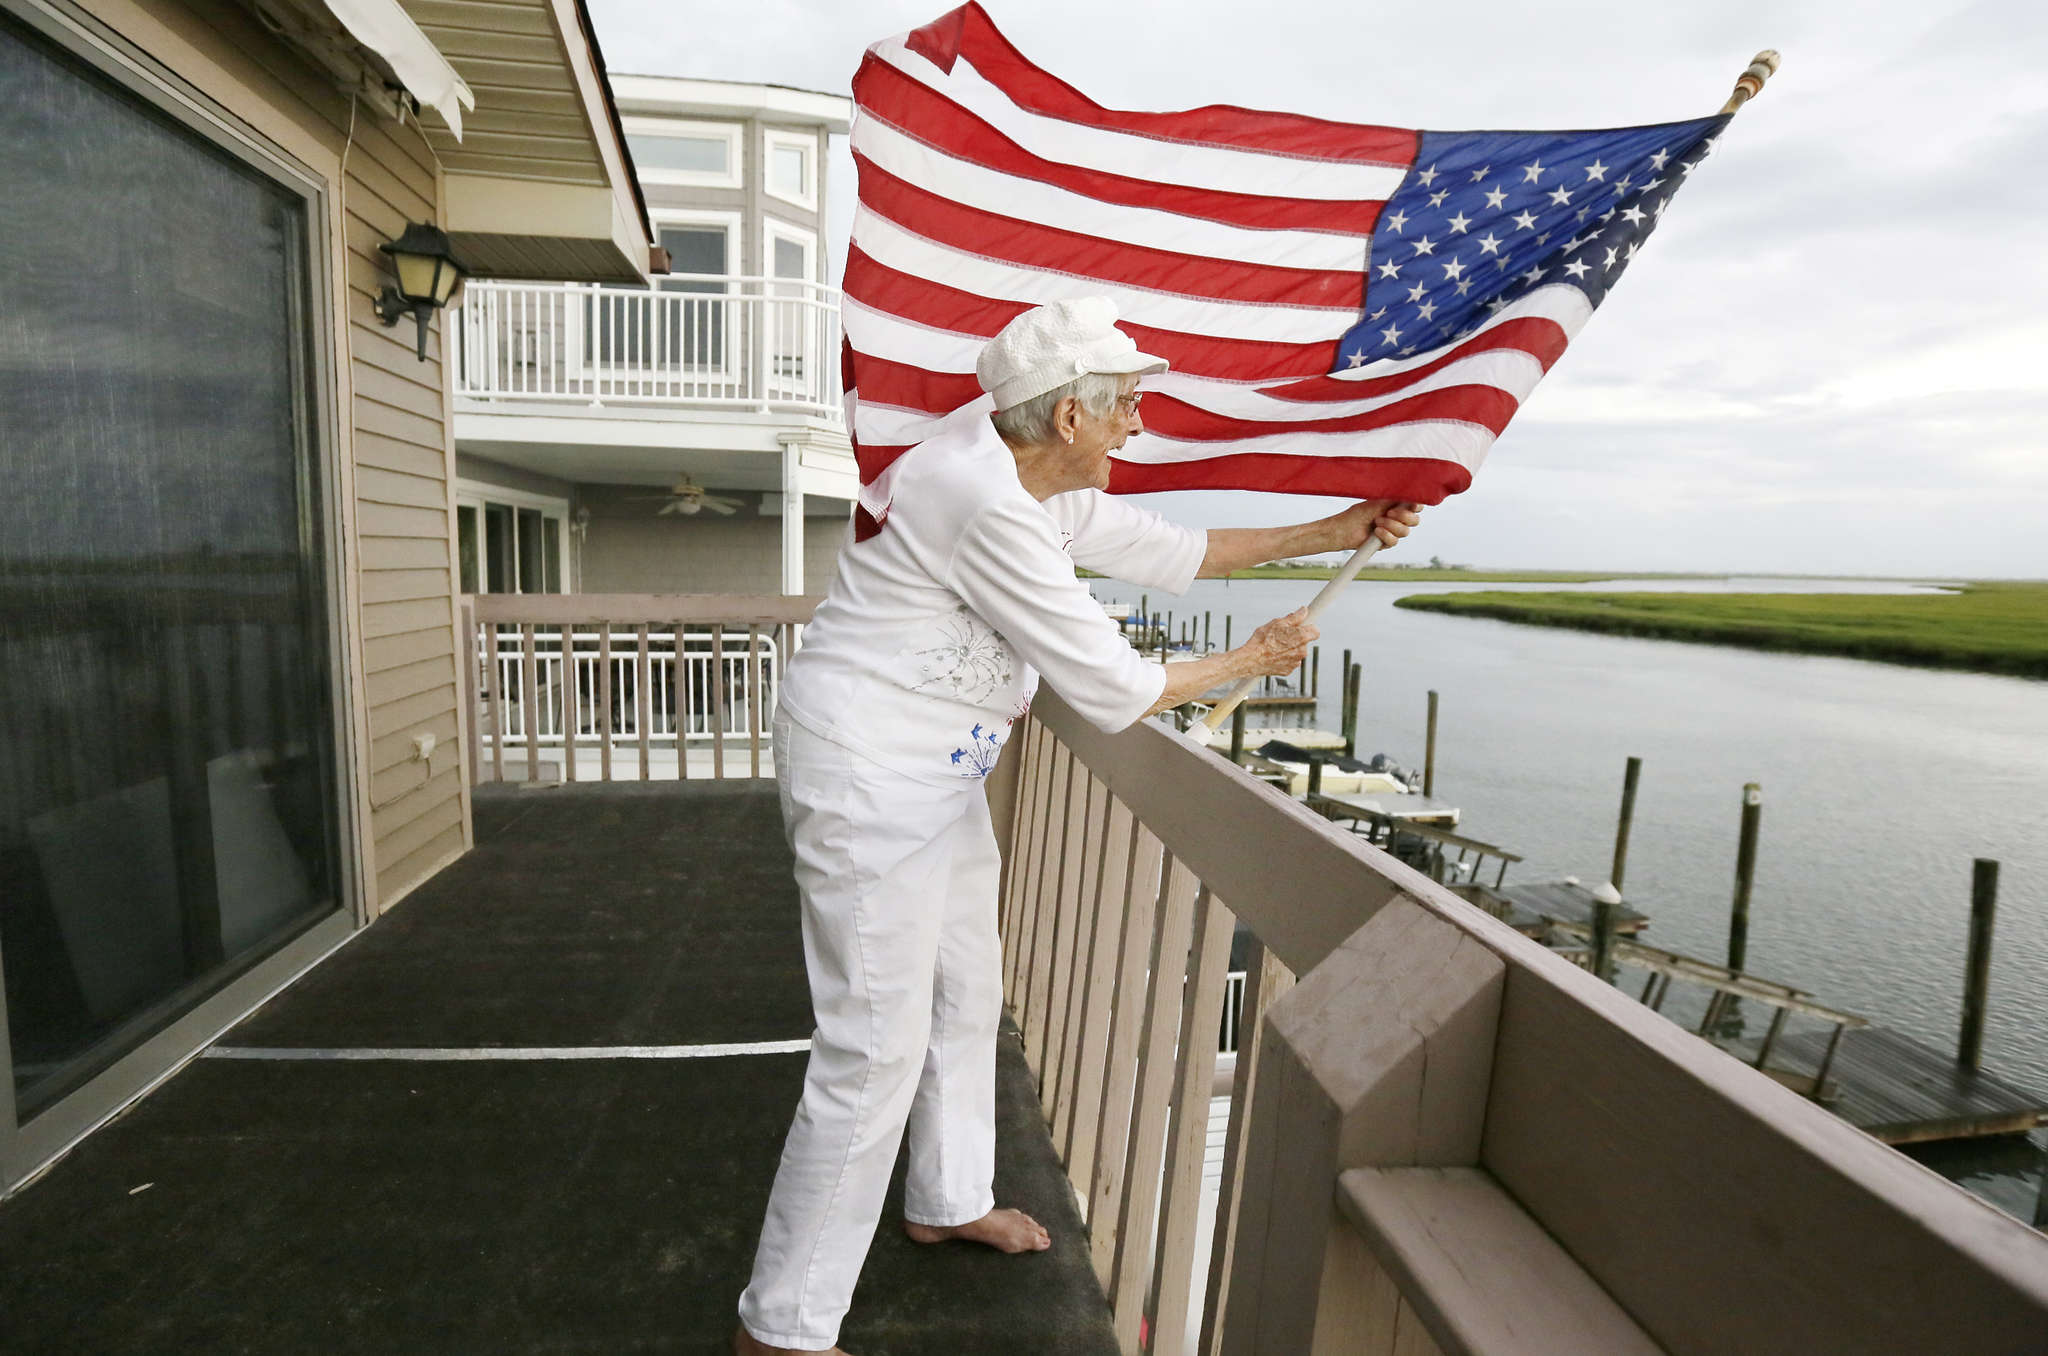 Henrietta Creighton, known as Grandma Etta, 92, puts her flag out at her Shore home.